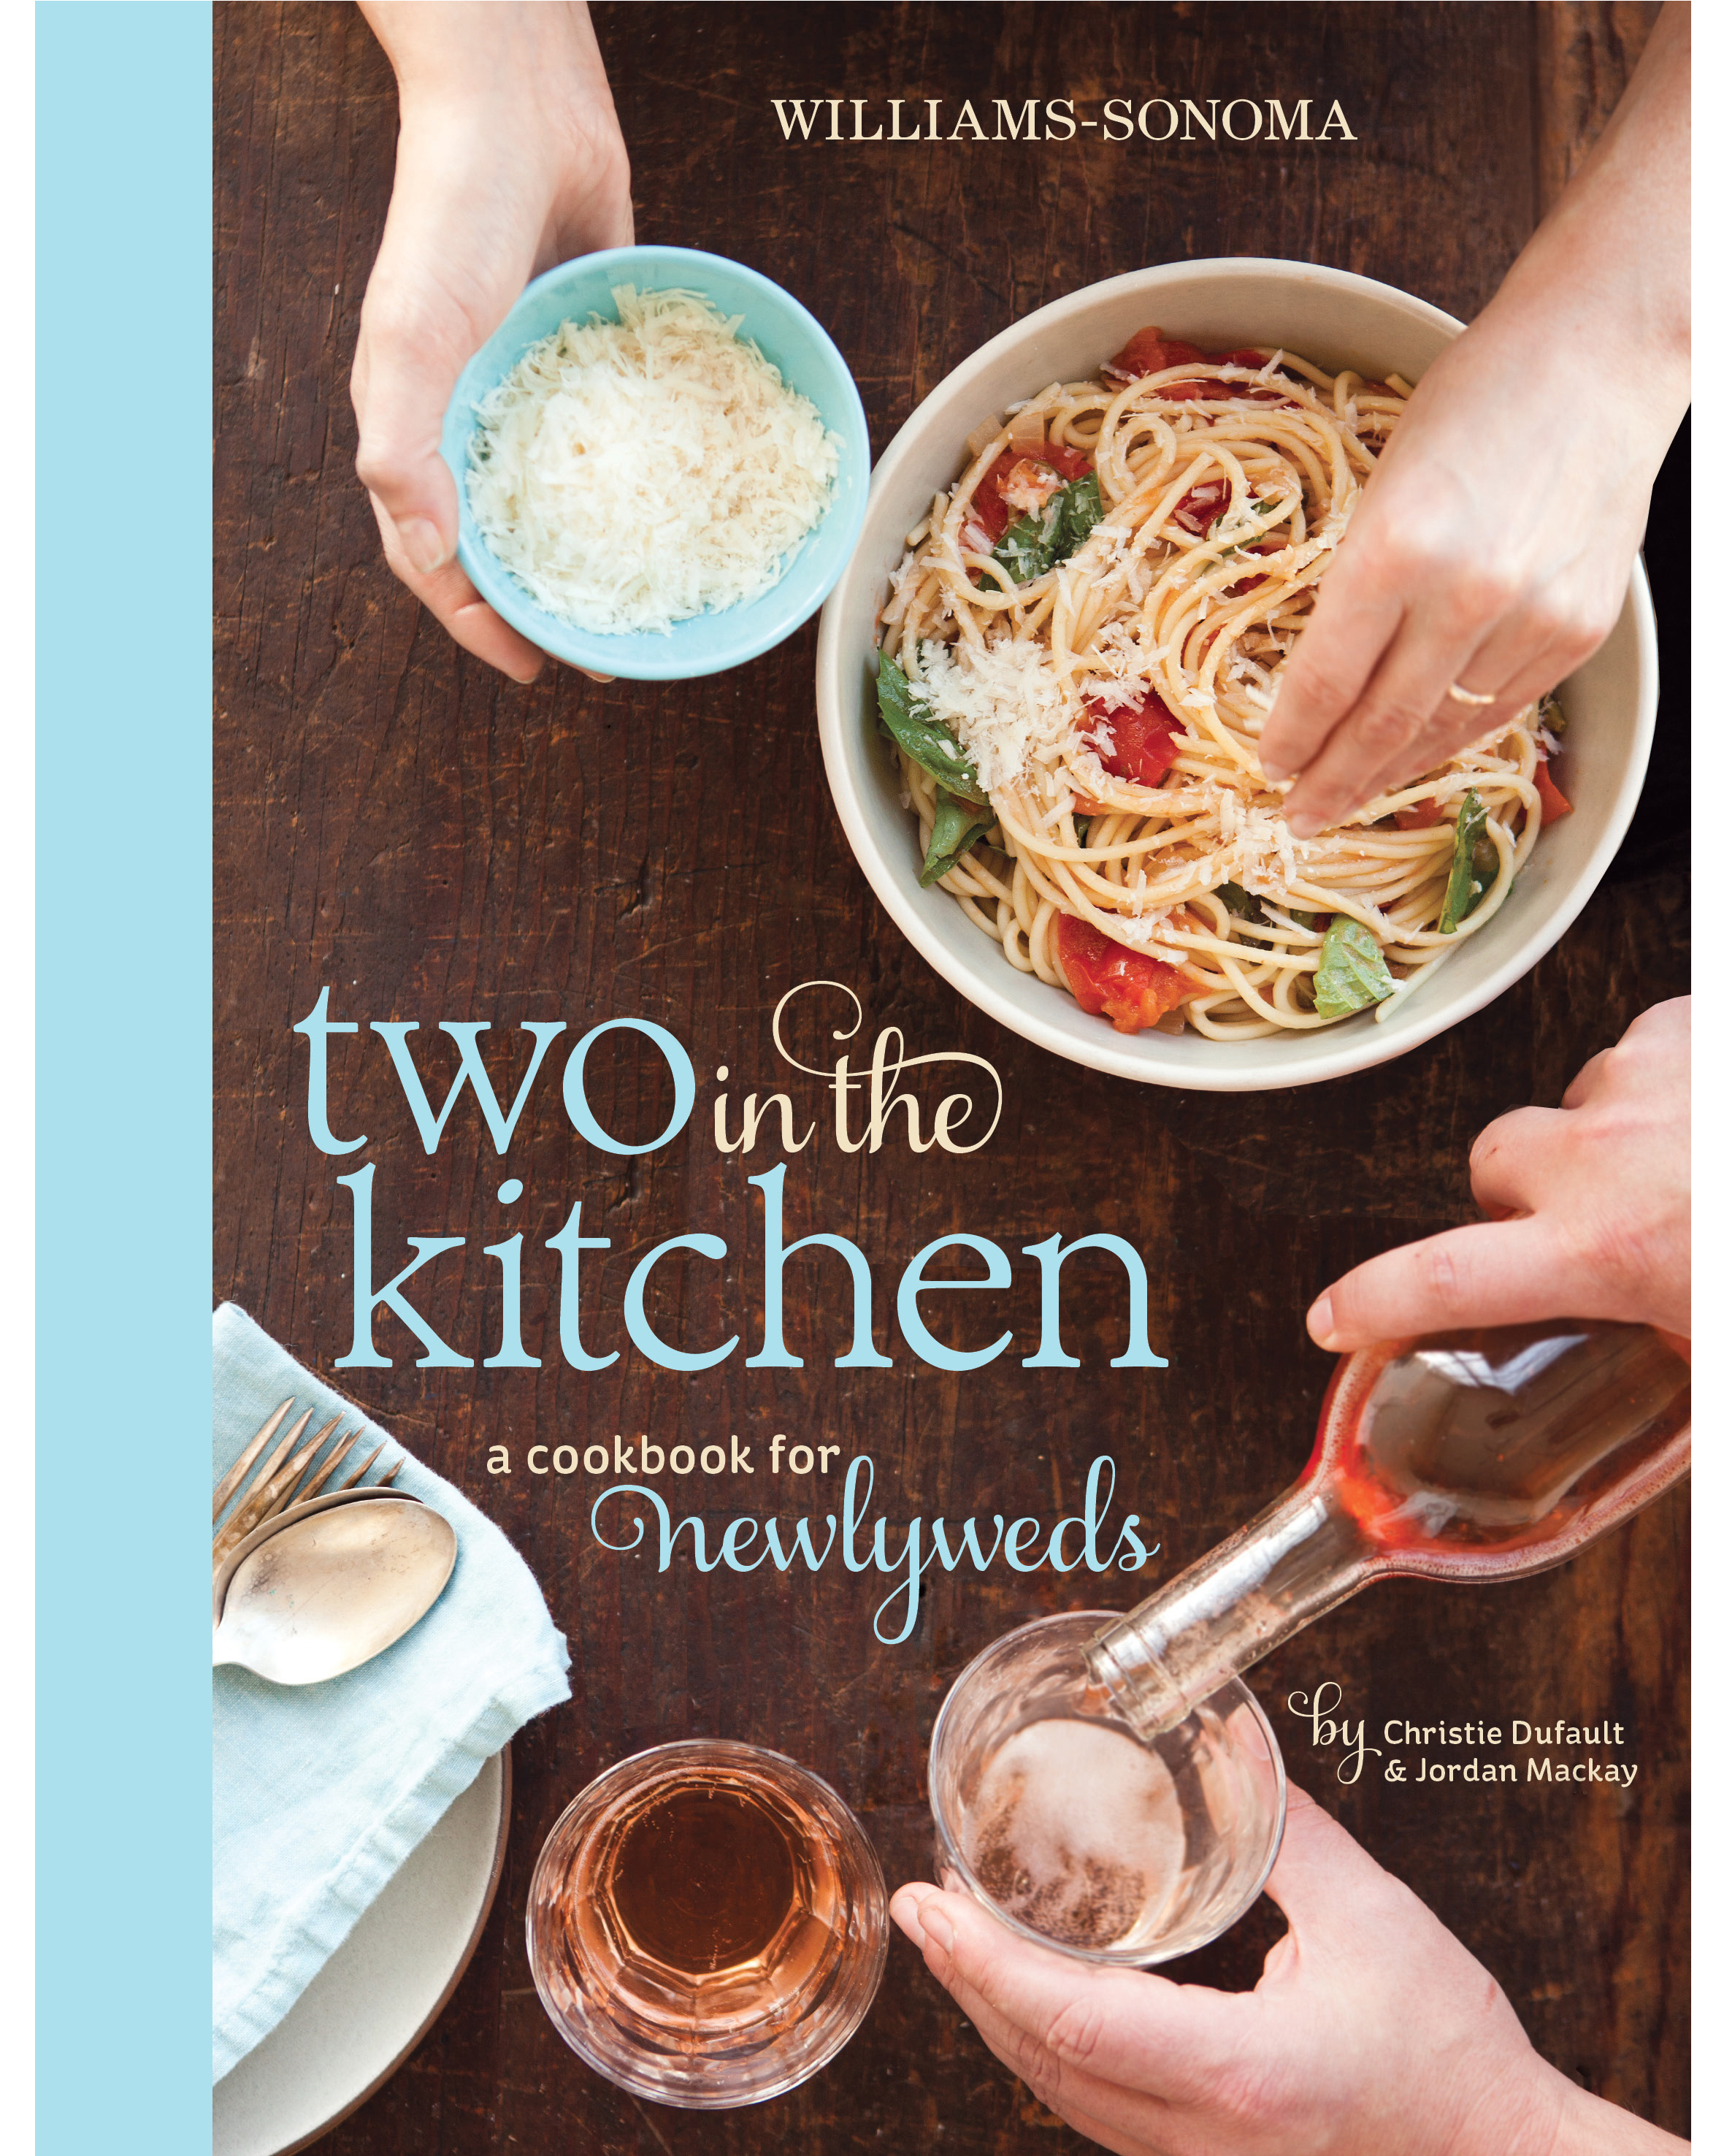 newlywed-cookbooks-two-kitchen-1015.jpg